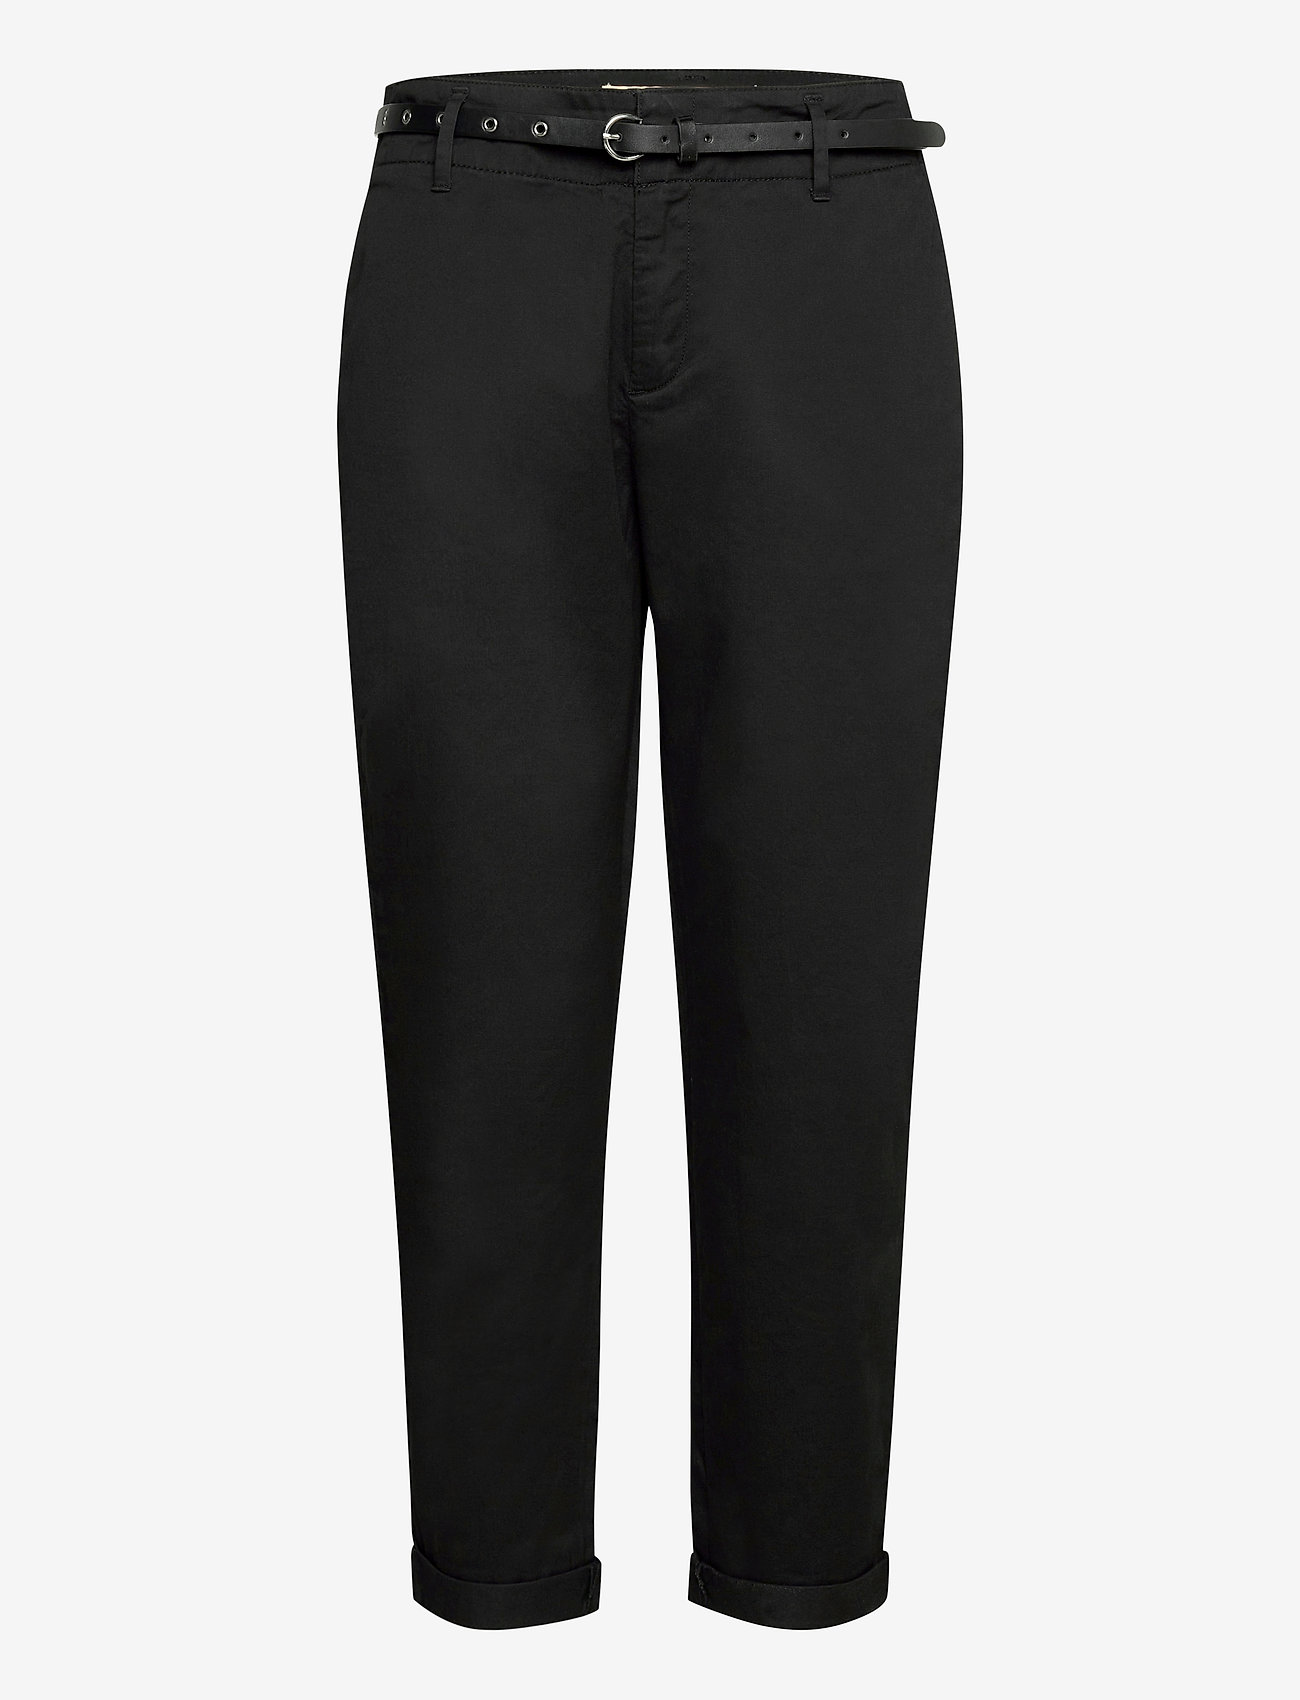 Scotch & Soda - Regular fit chino, sold with a belt - chinos - black - 0